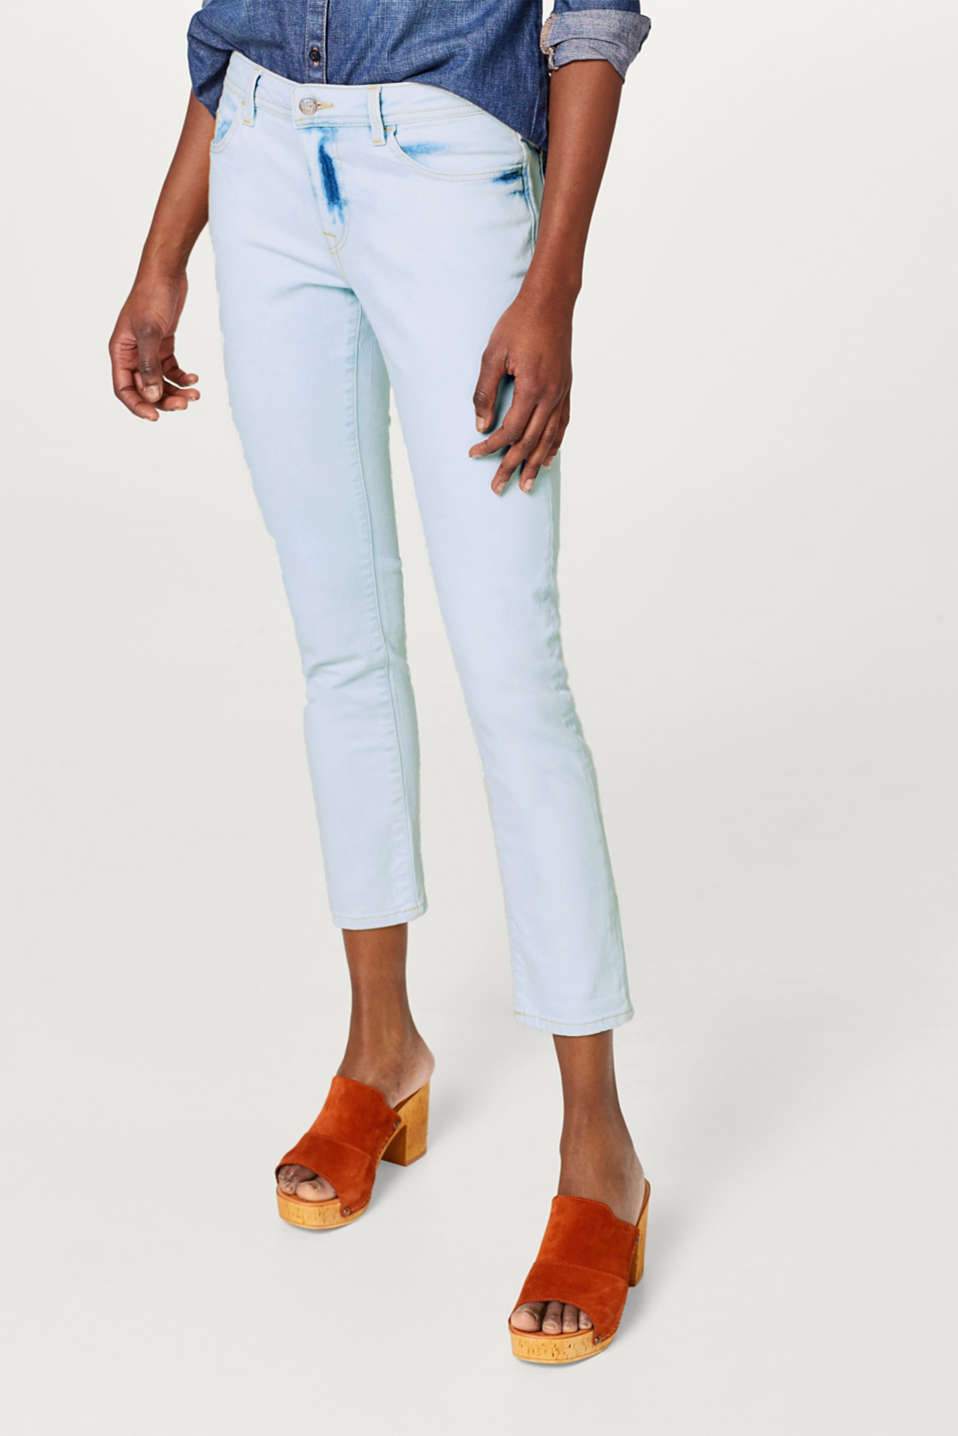 edc - Cropped stretch jeans with an acid wash